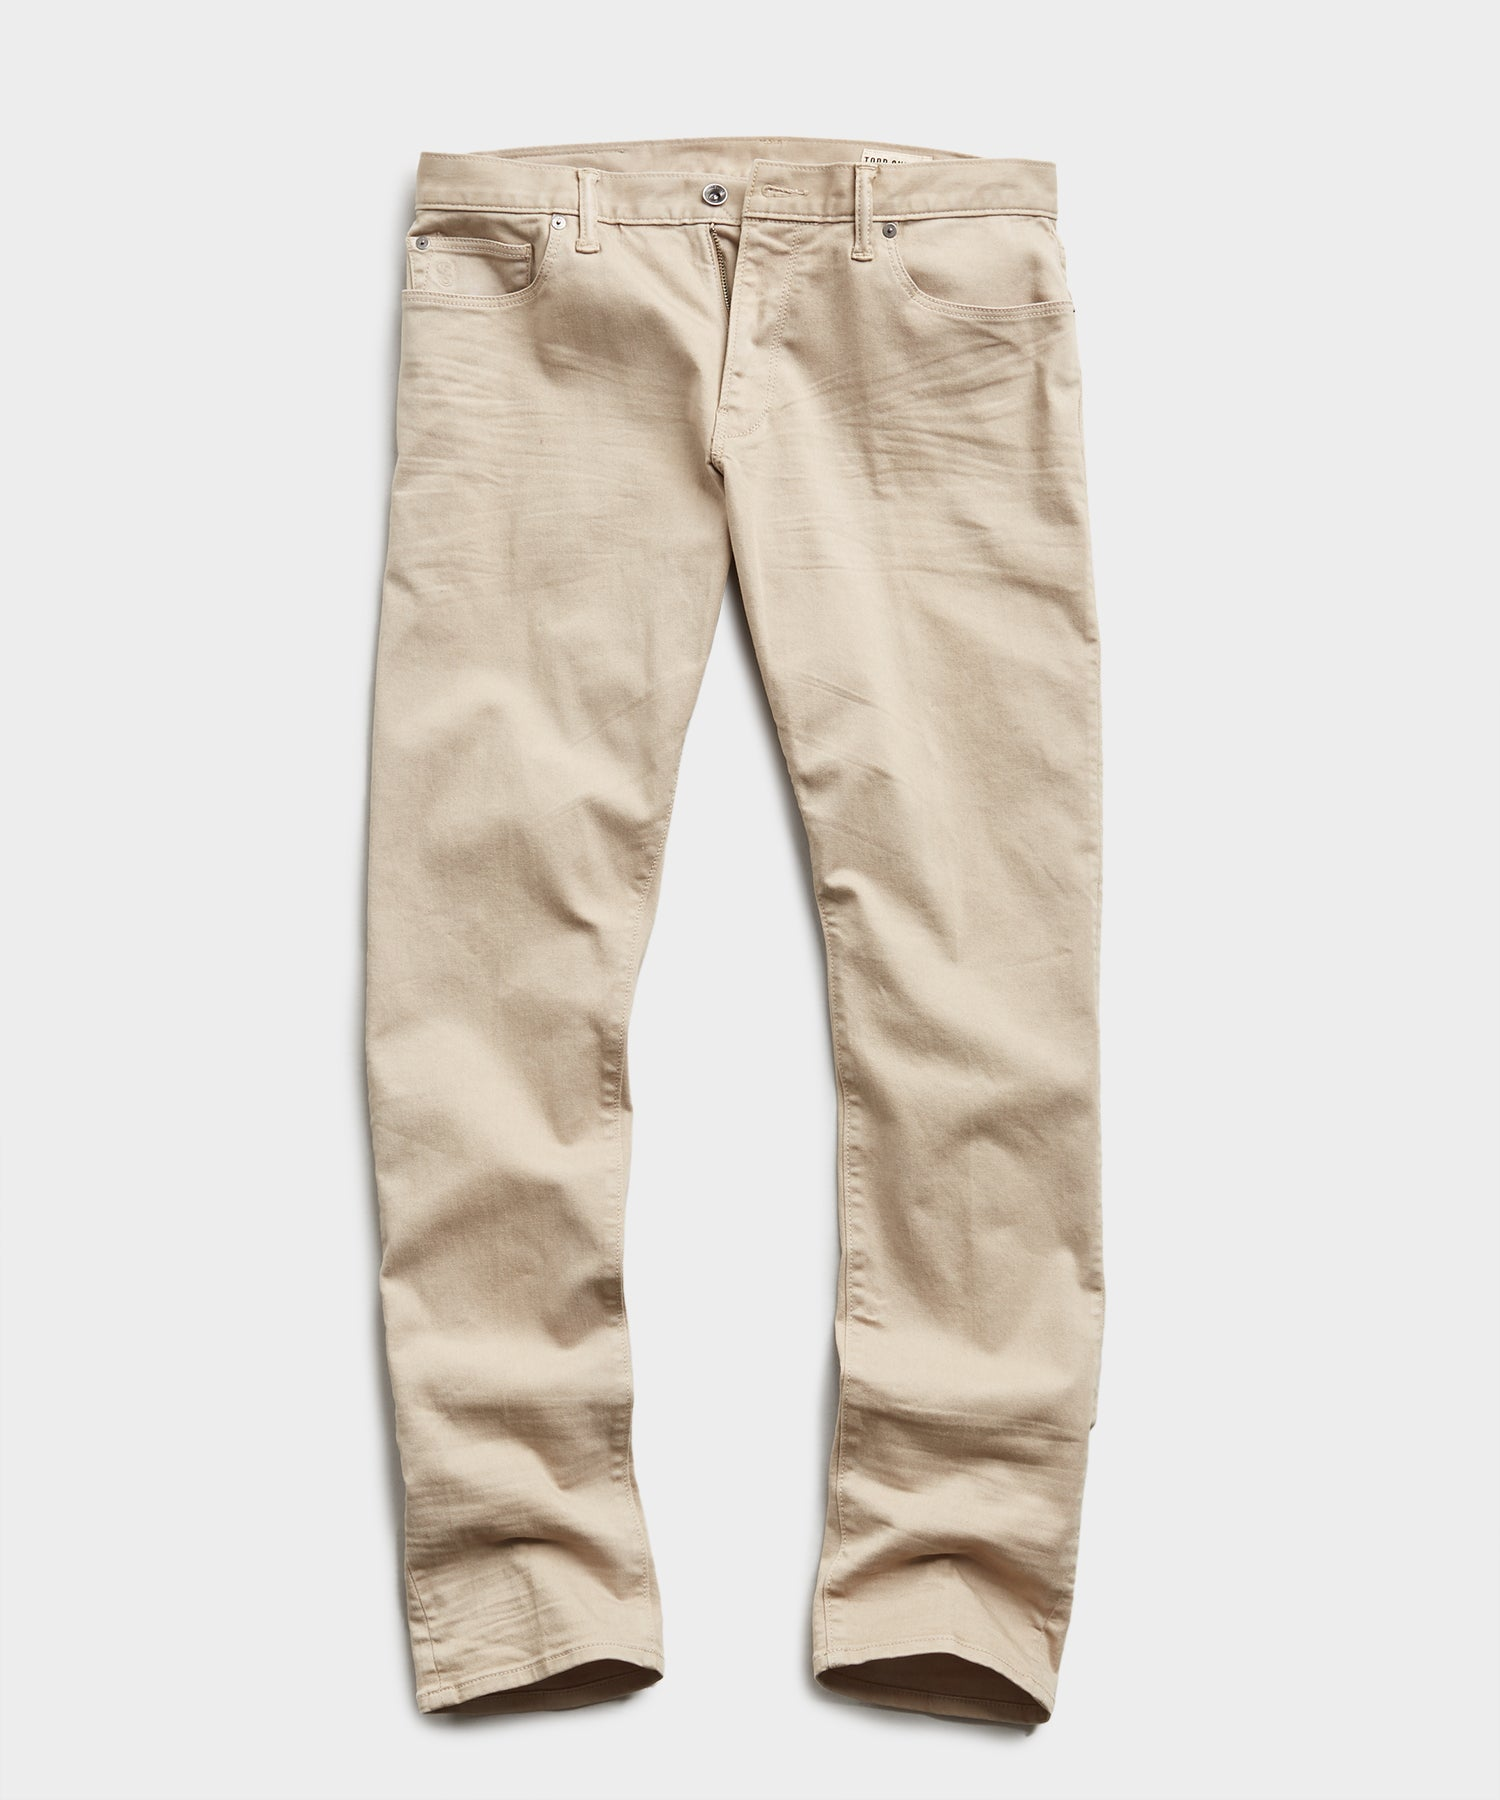 SLIM FIT 5-POCKET CHINO IN CASUAL KHAKI